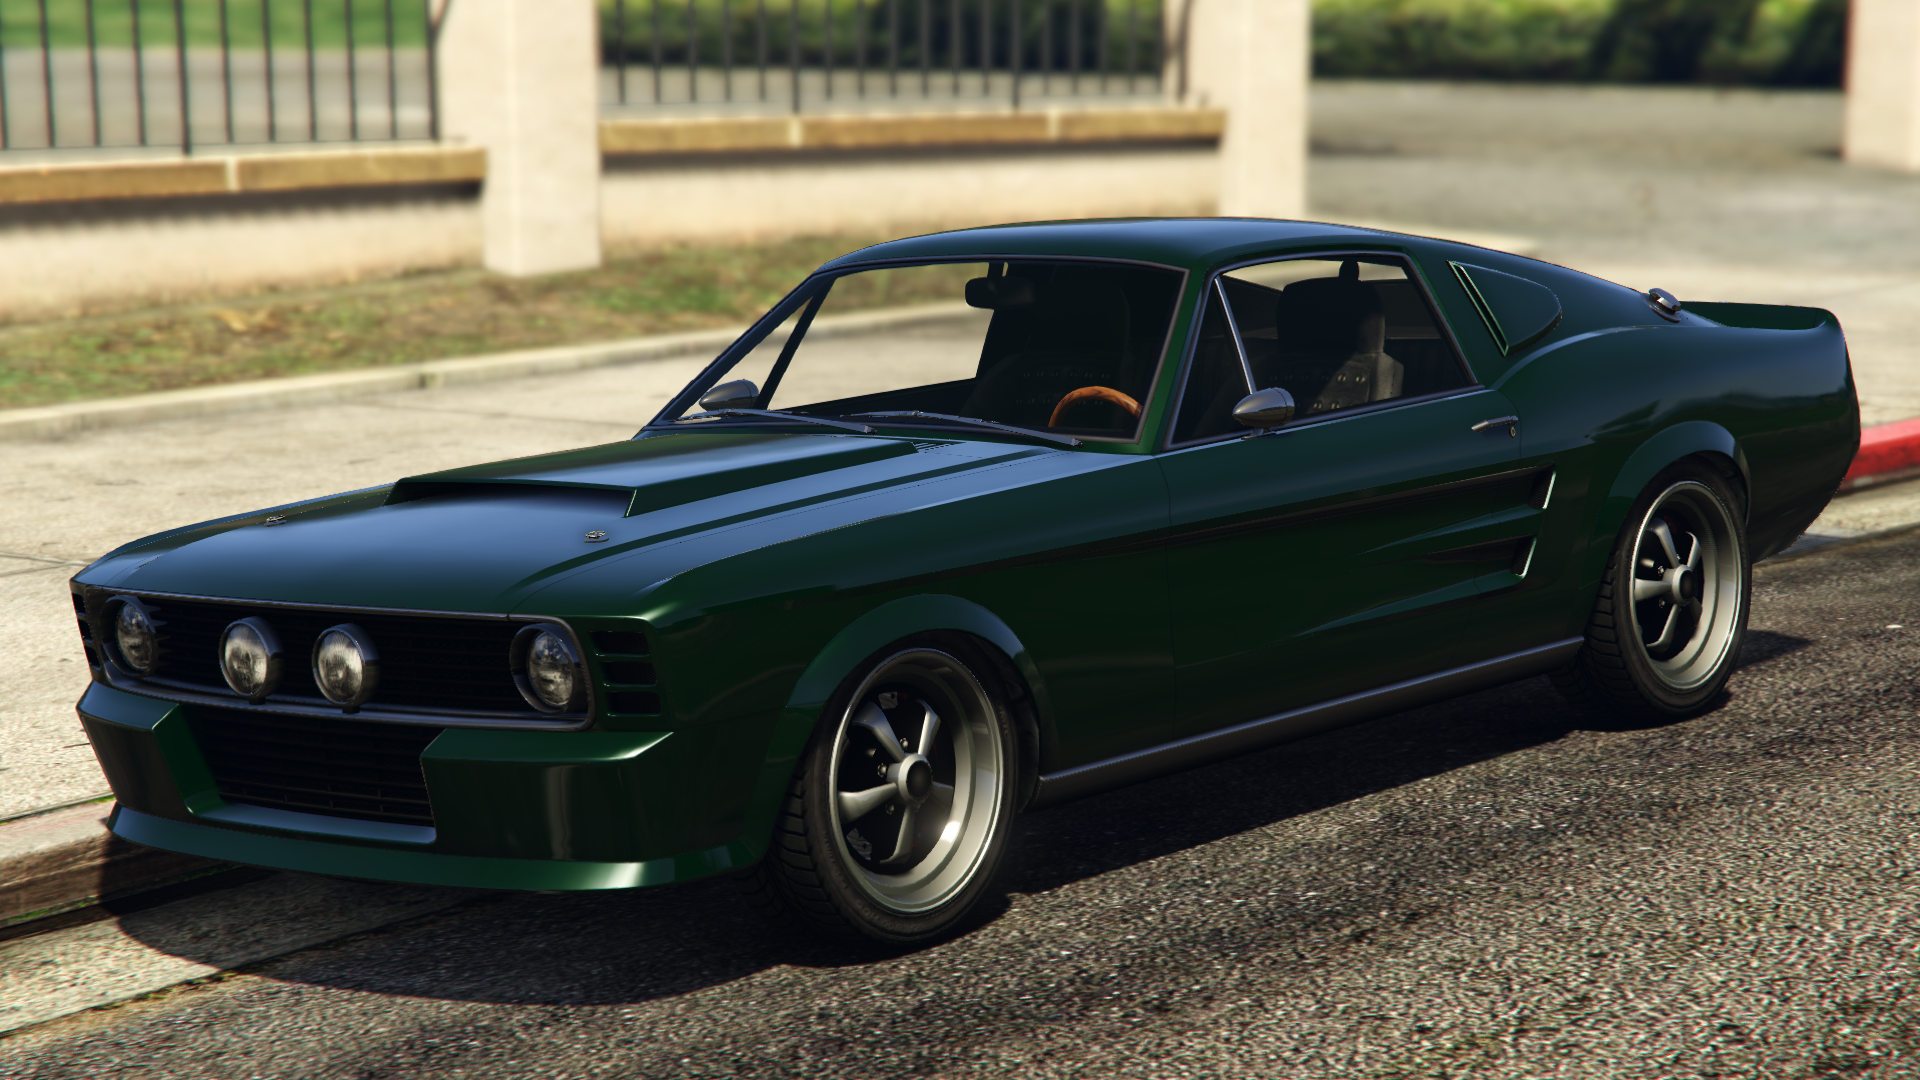 Pin By Misty Watson On Gta V Vehicles Gta Cars Shelby Mustang